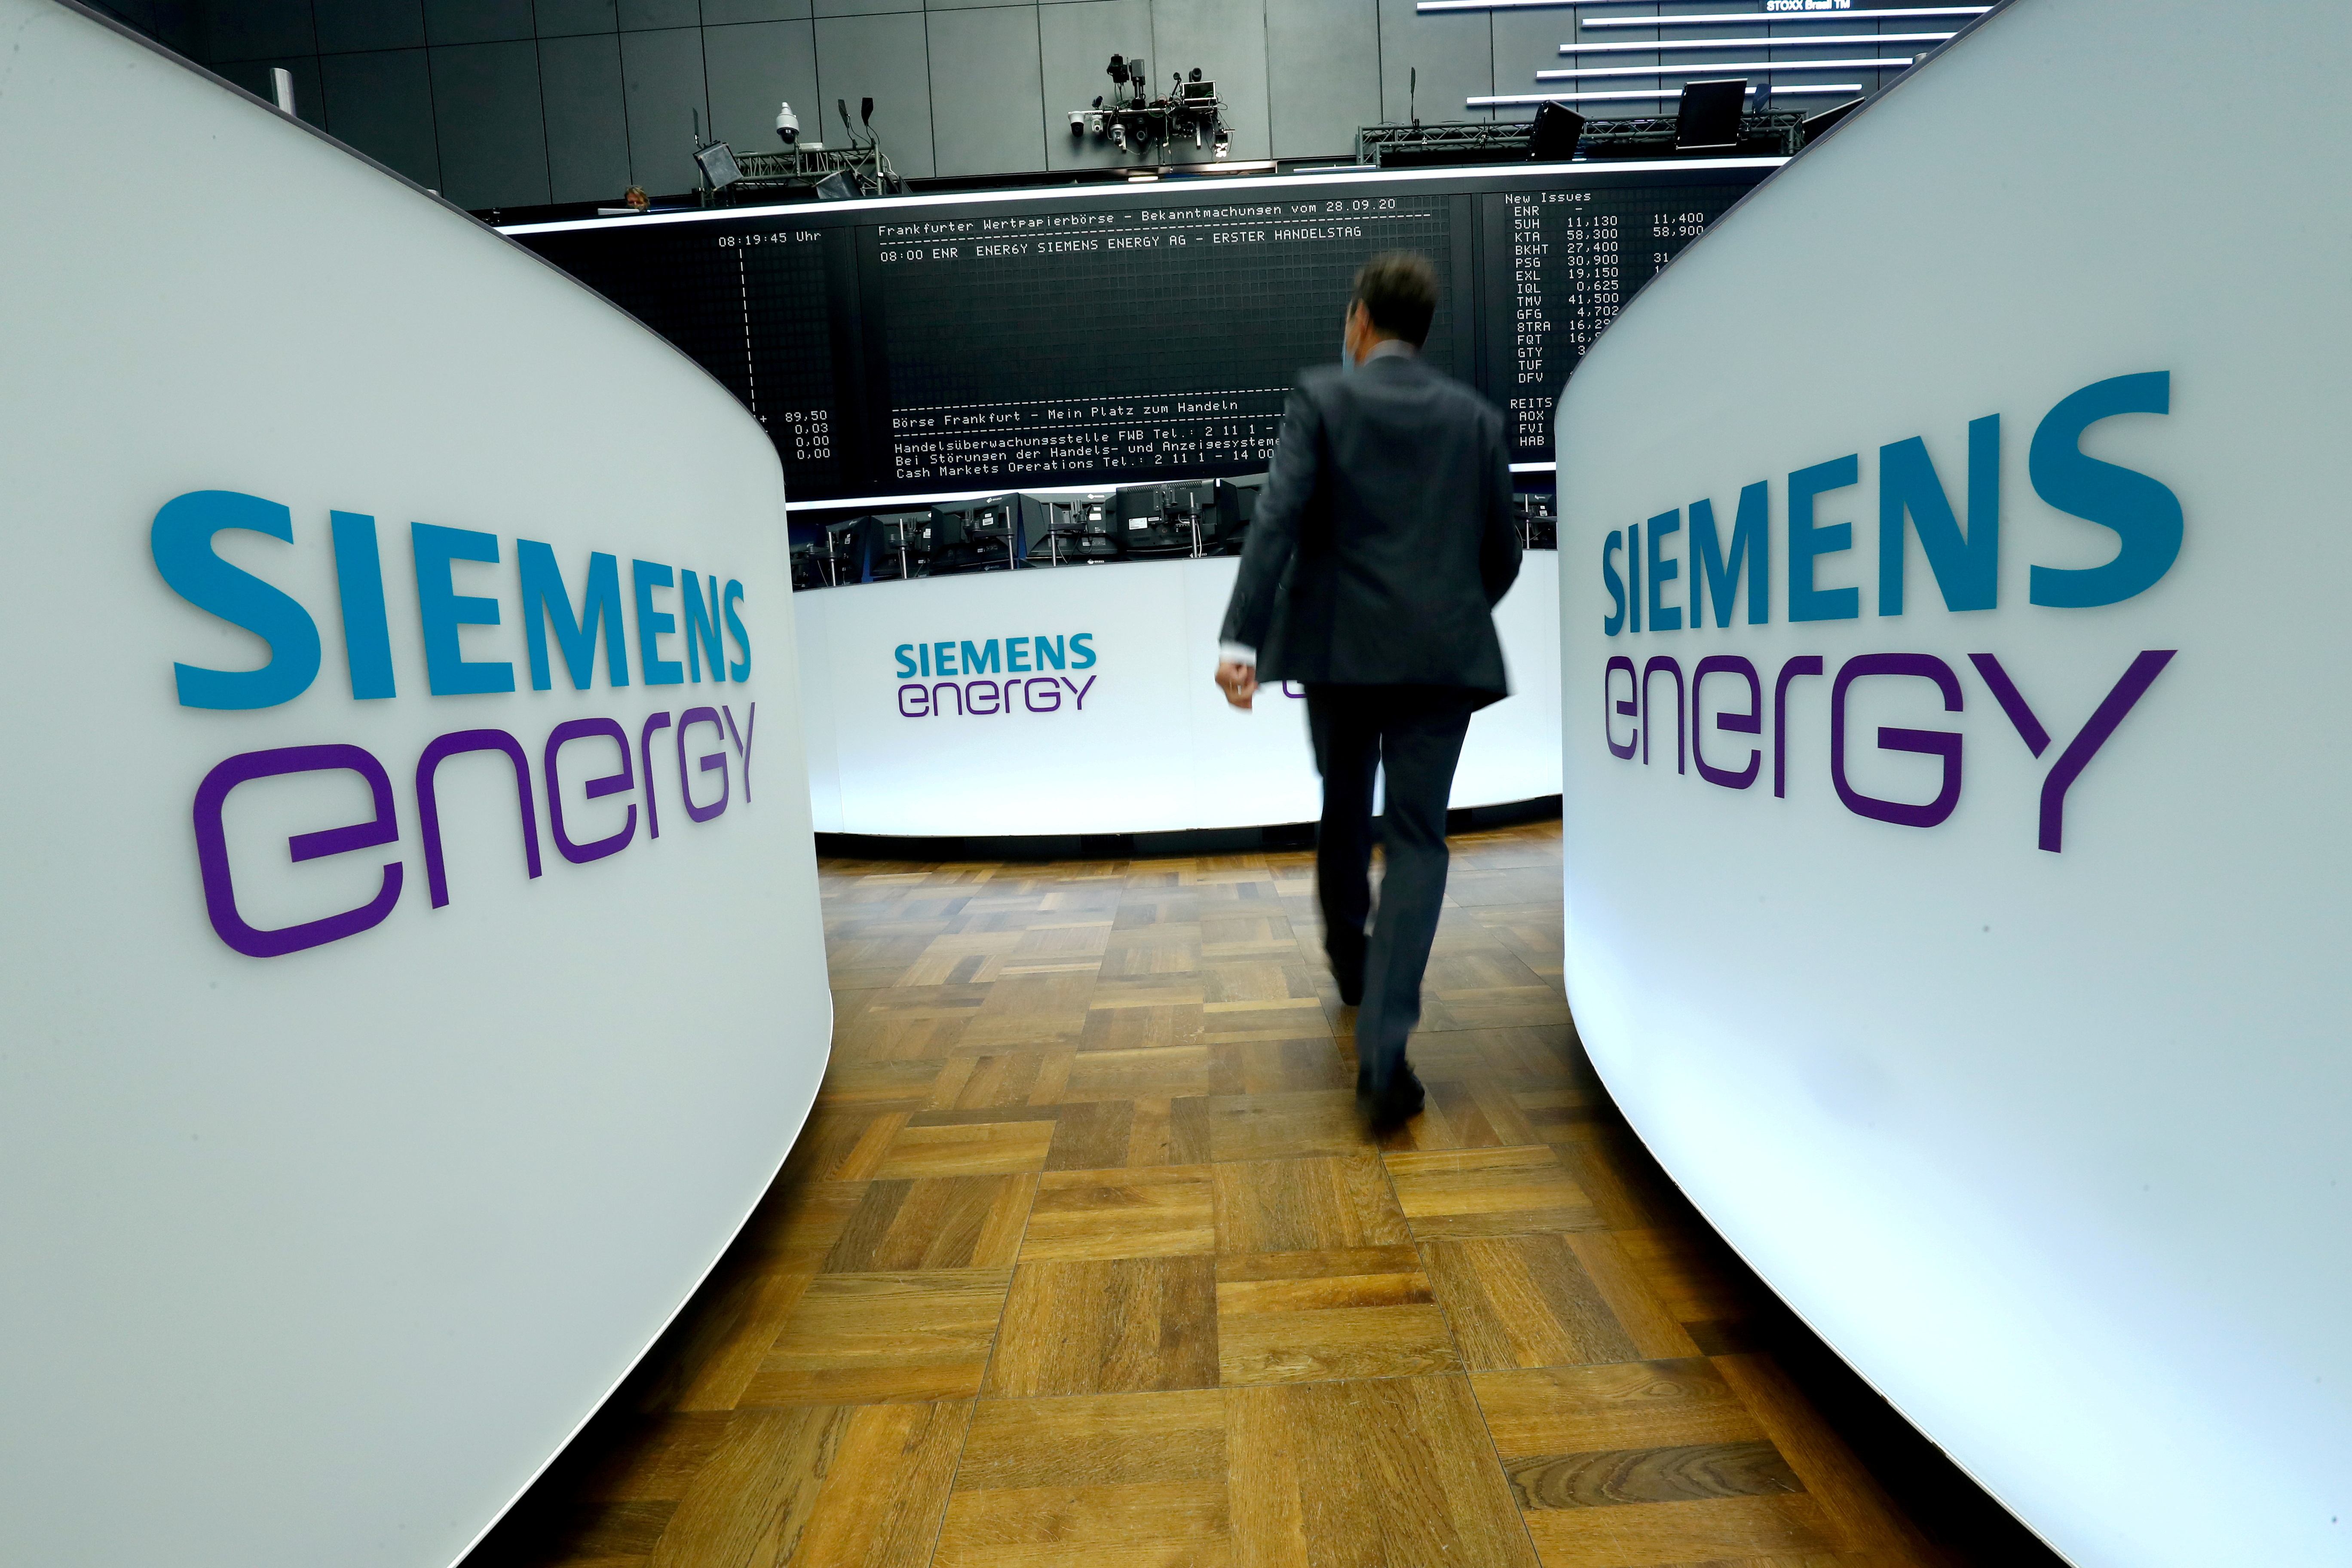 A trader walks next to Siemens Energy AG logos during Siemens Energy's initial public offering (IPO) at the Frankfurt Stock Exchange in Frankfurt, Germany, September 28, 2020.  REUTERS/Ralph Orlowski/File Photo